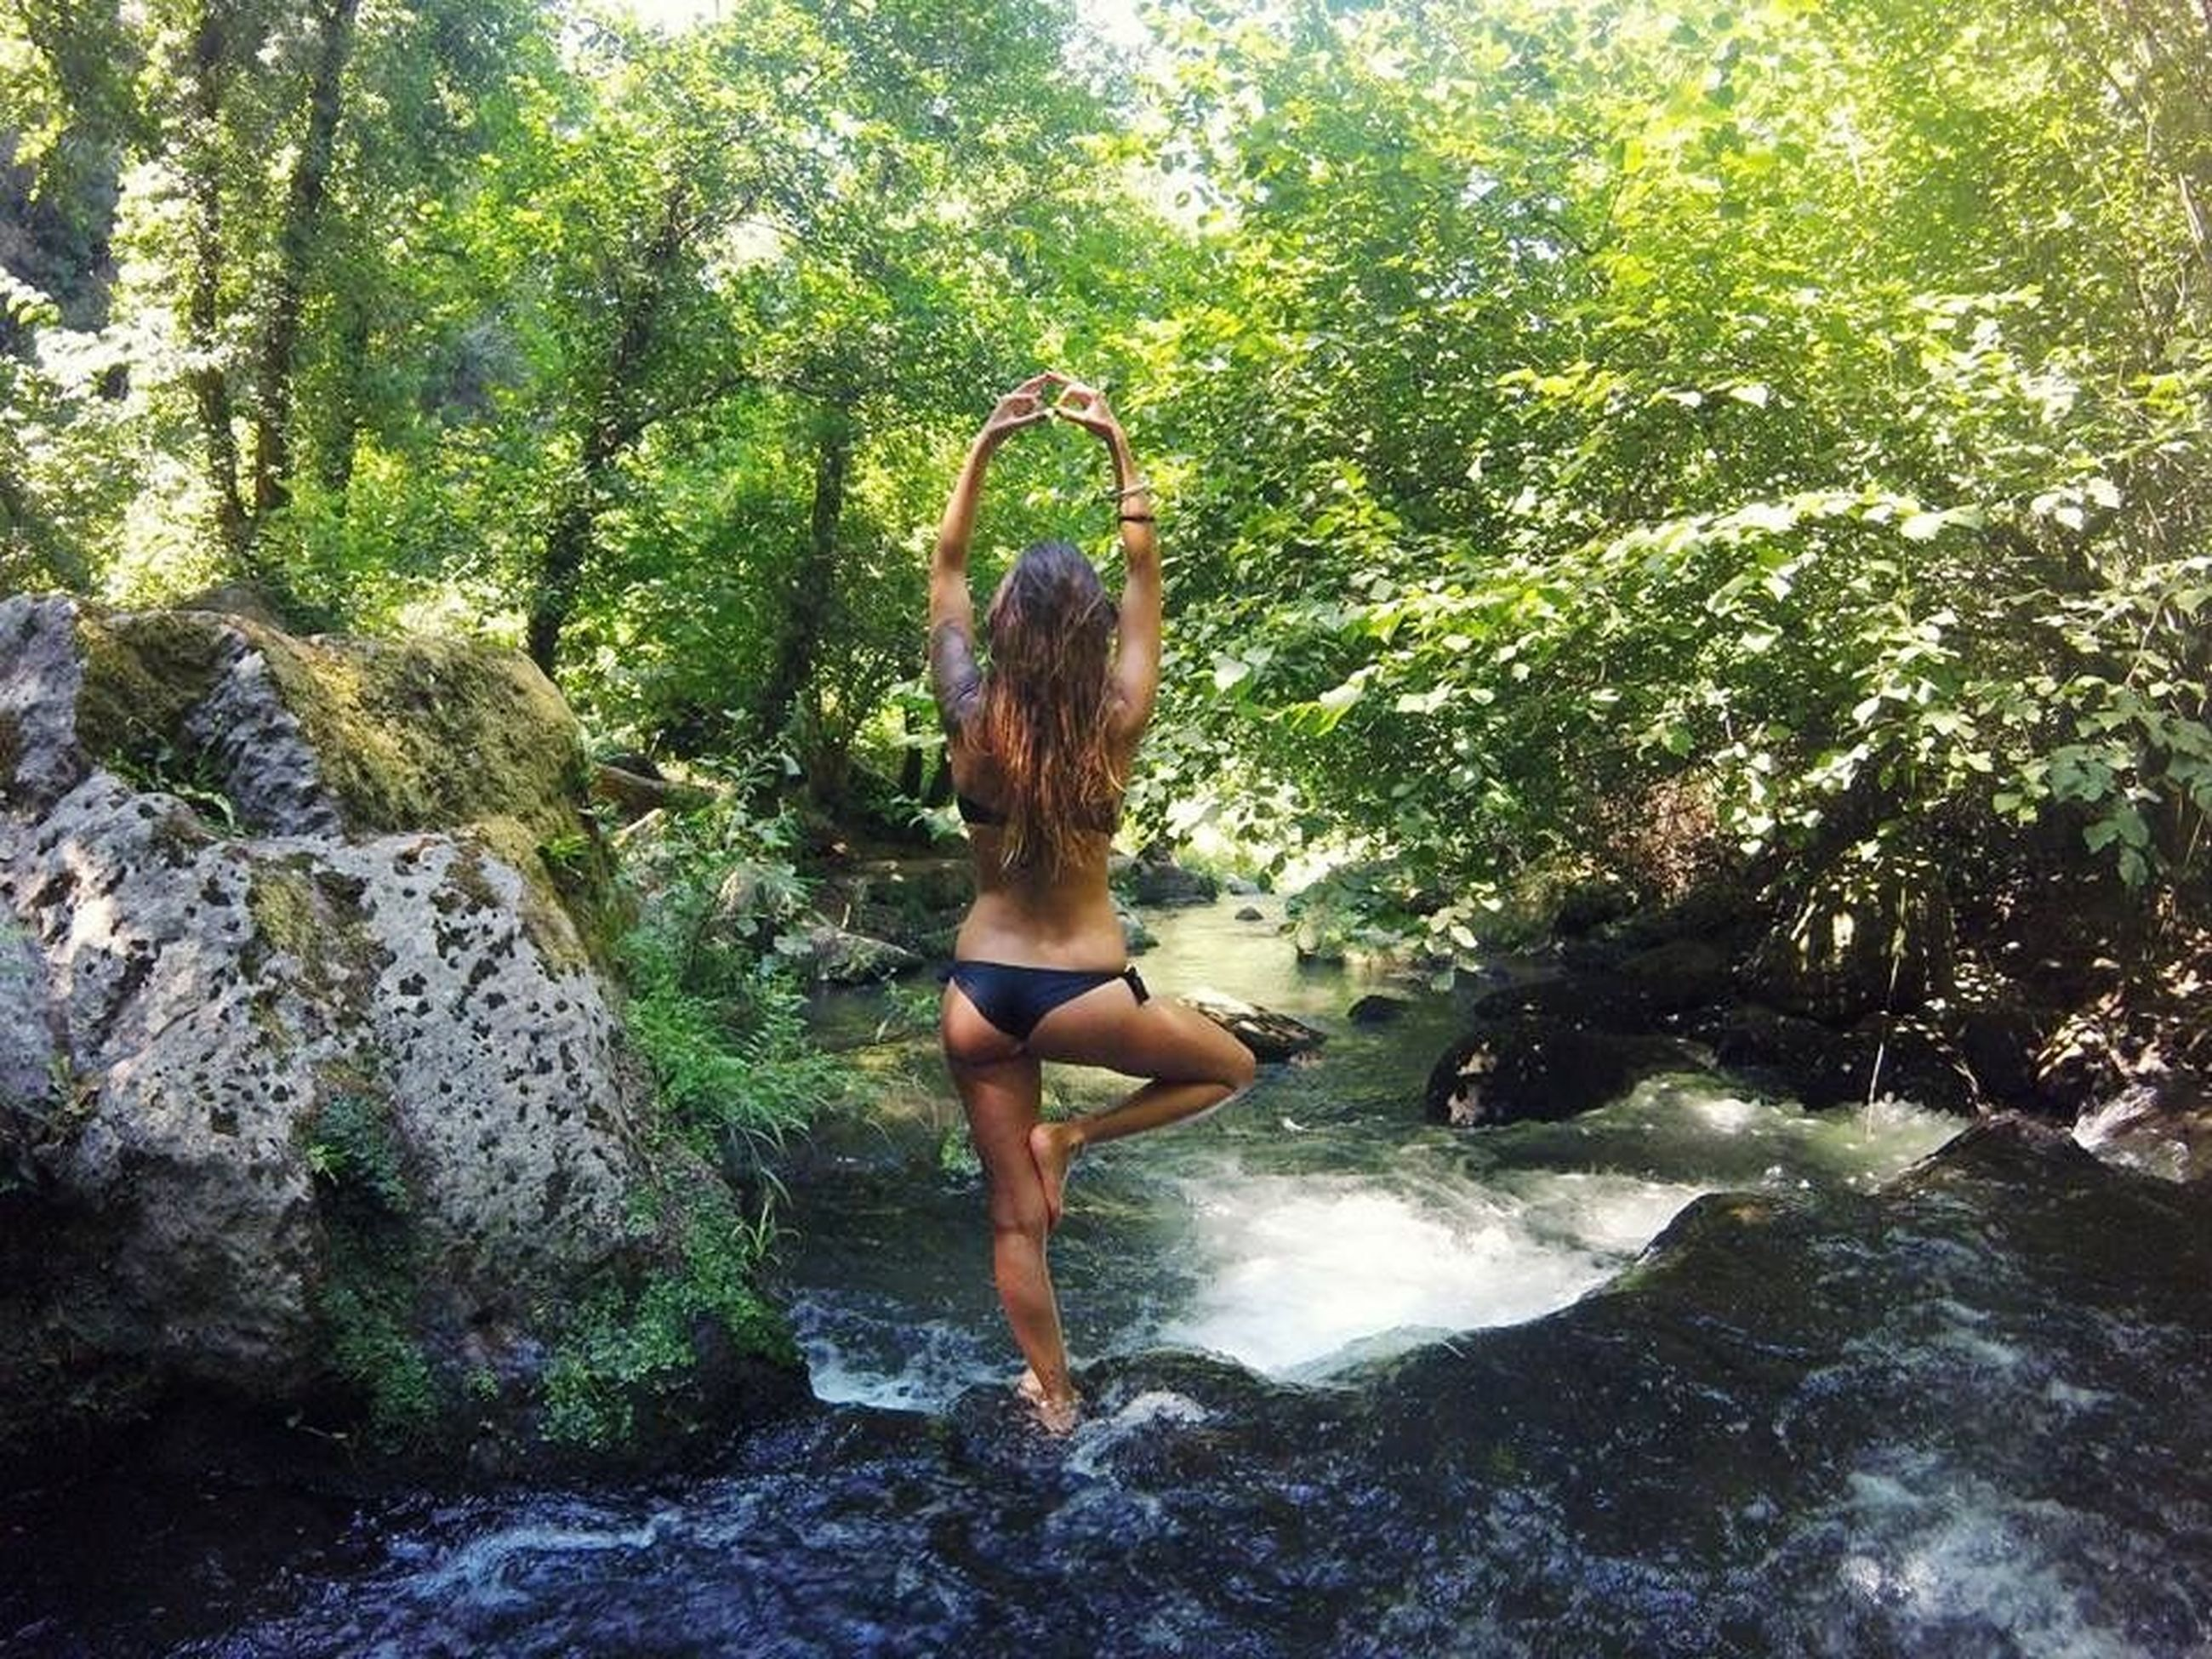 one person, rock, real people, rock - object, solid, young women, tree, plant, lifestyles, water, young adult, beauty in nature, nature, forest, leisure activity, hairstyle, women, hair, flowing water, outdoors